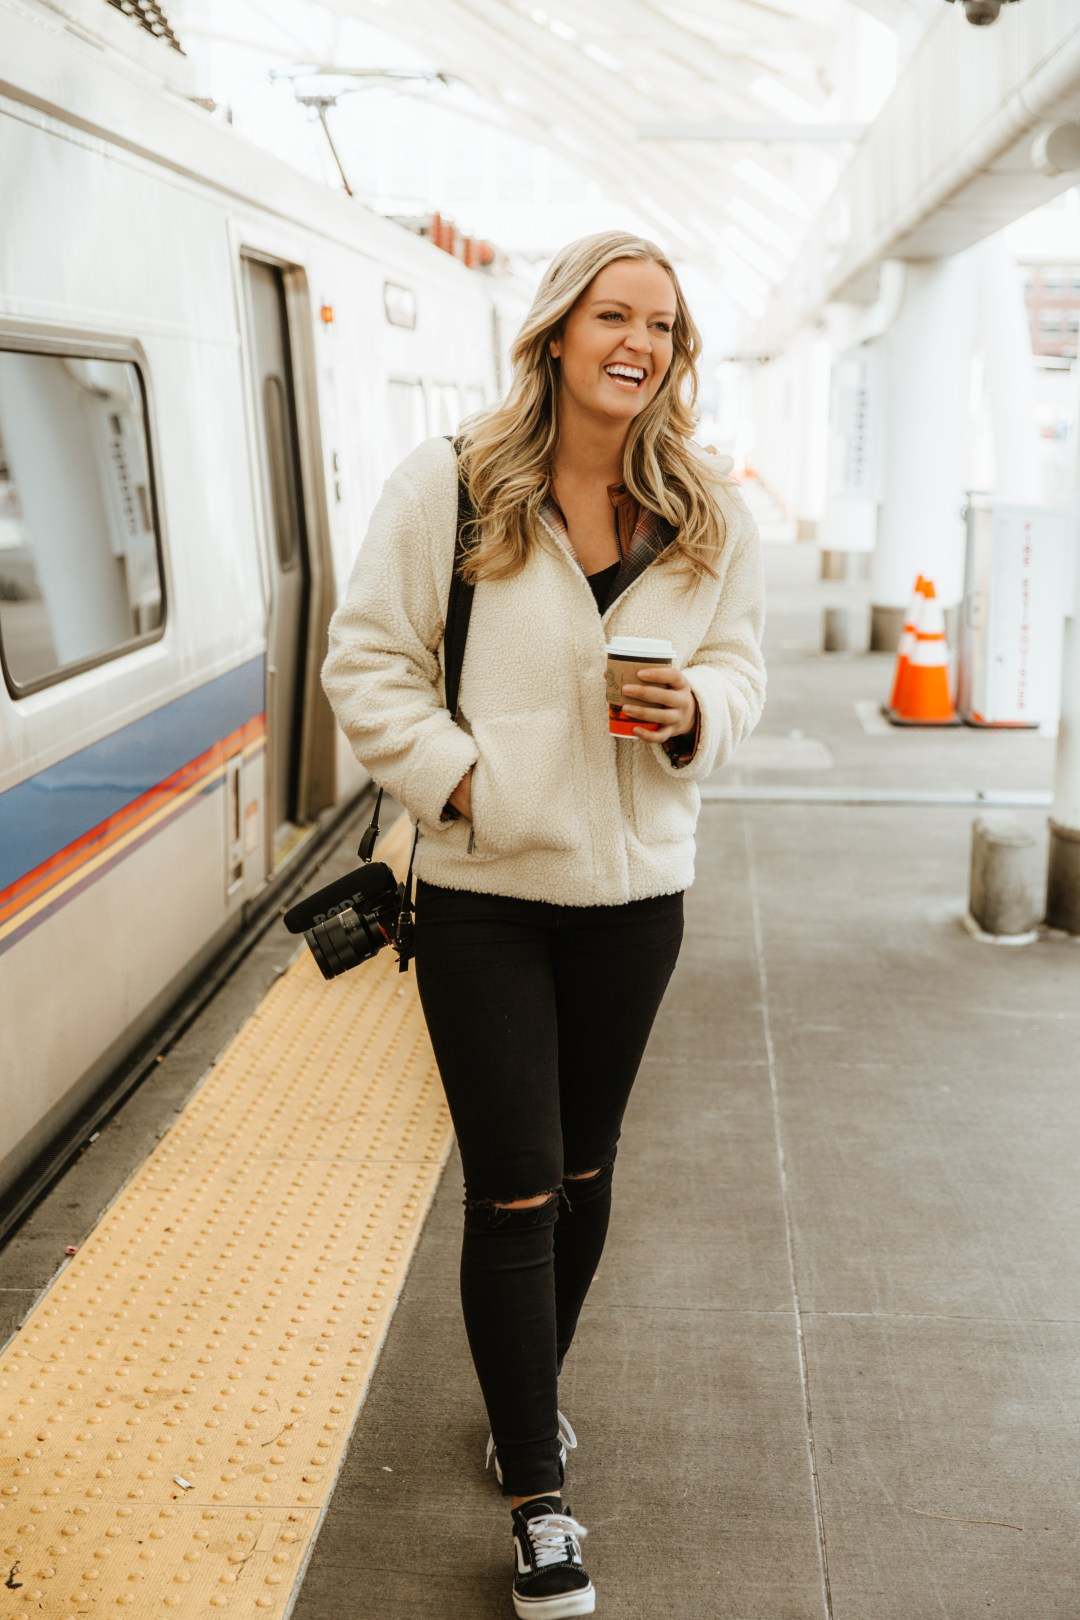 smiling girl next to train